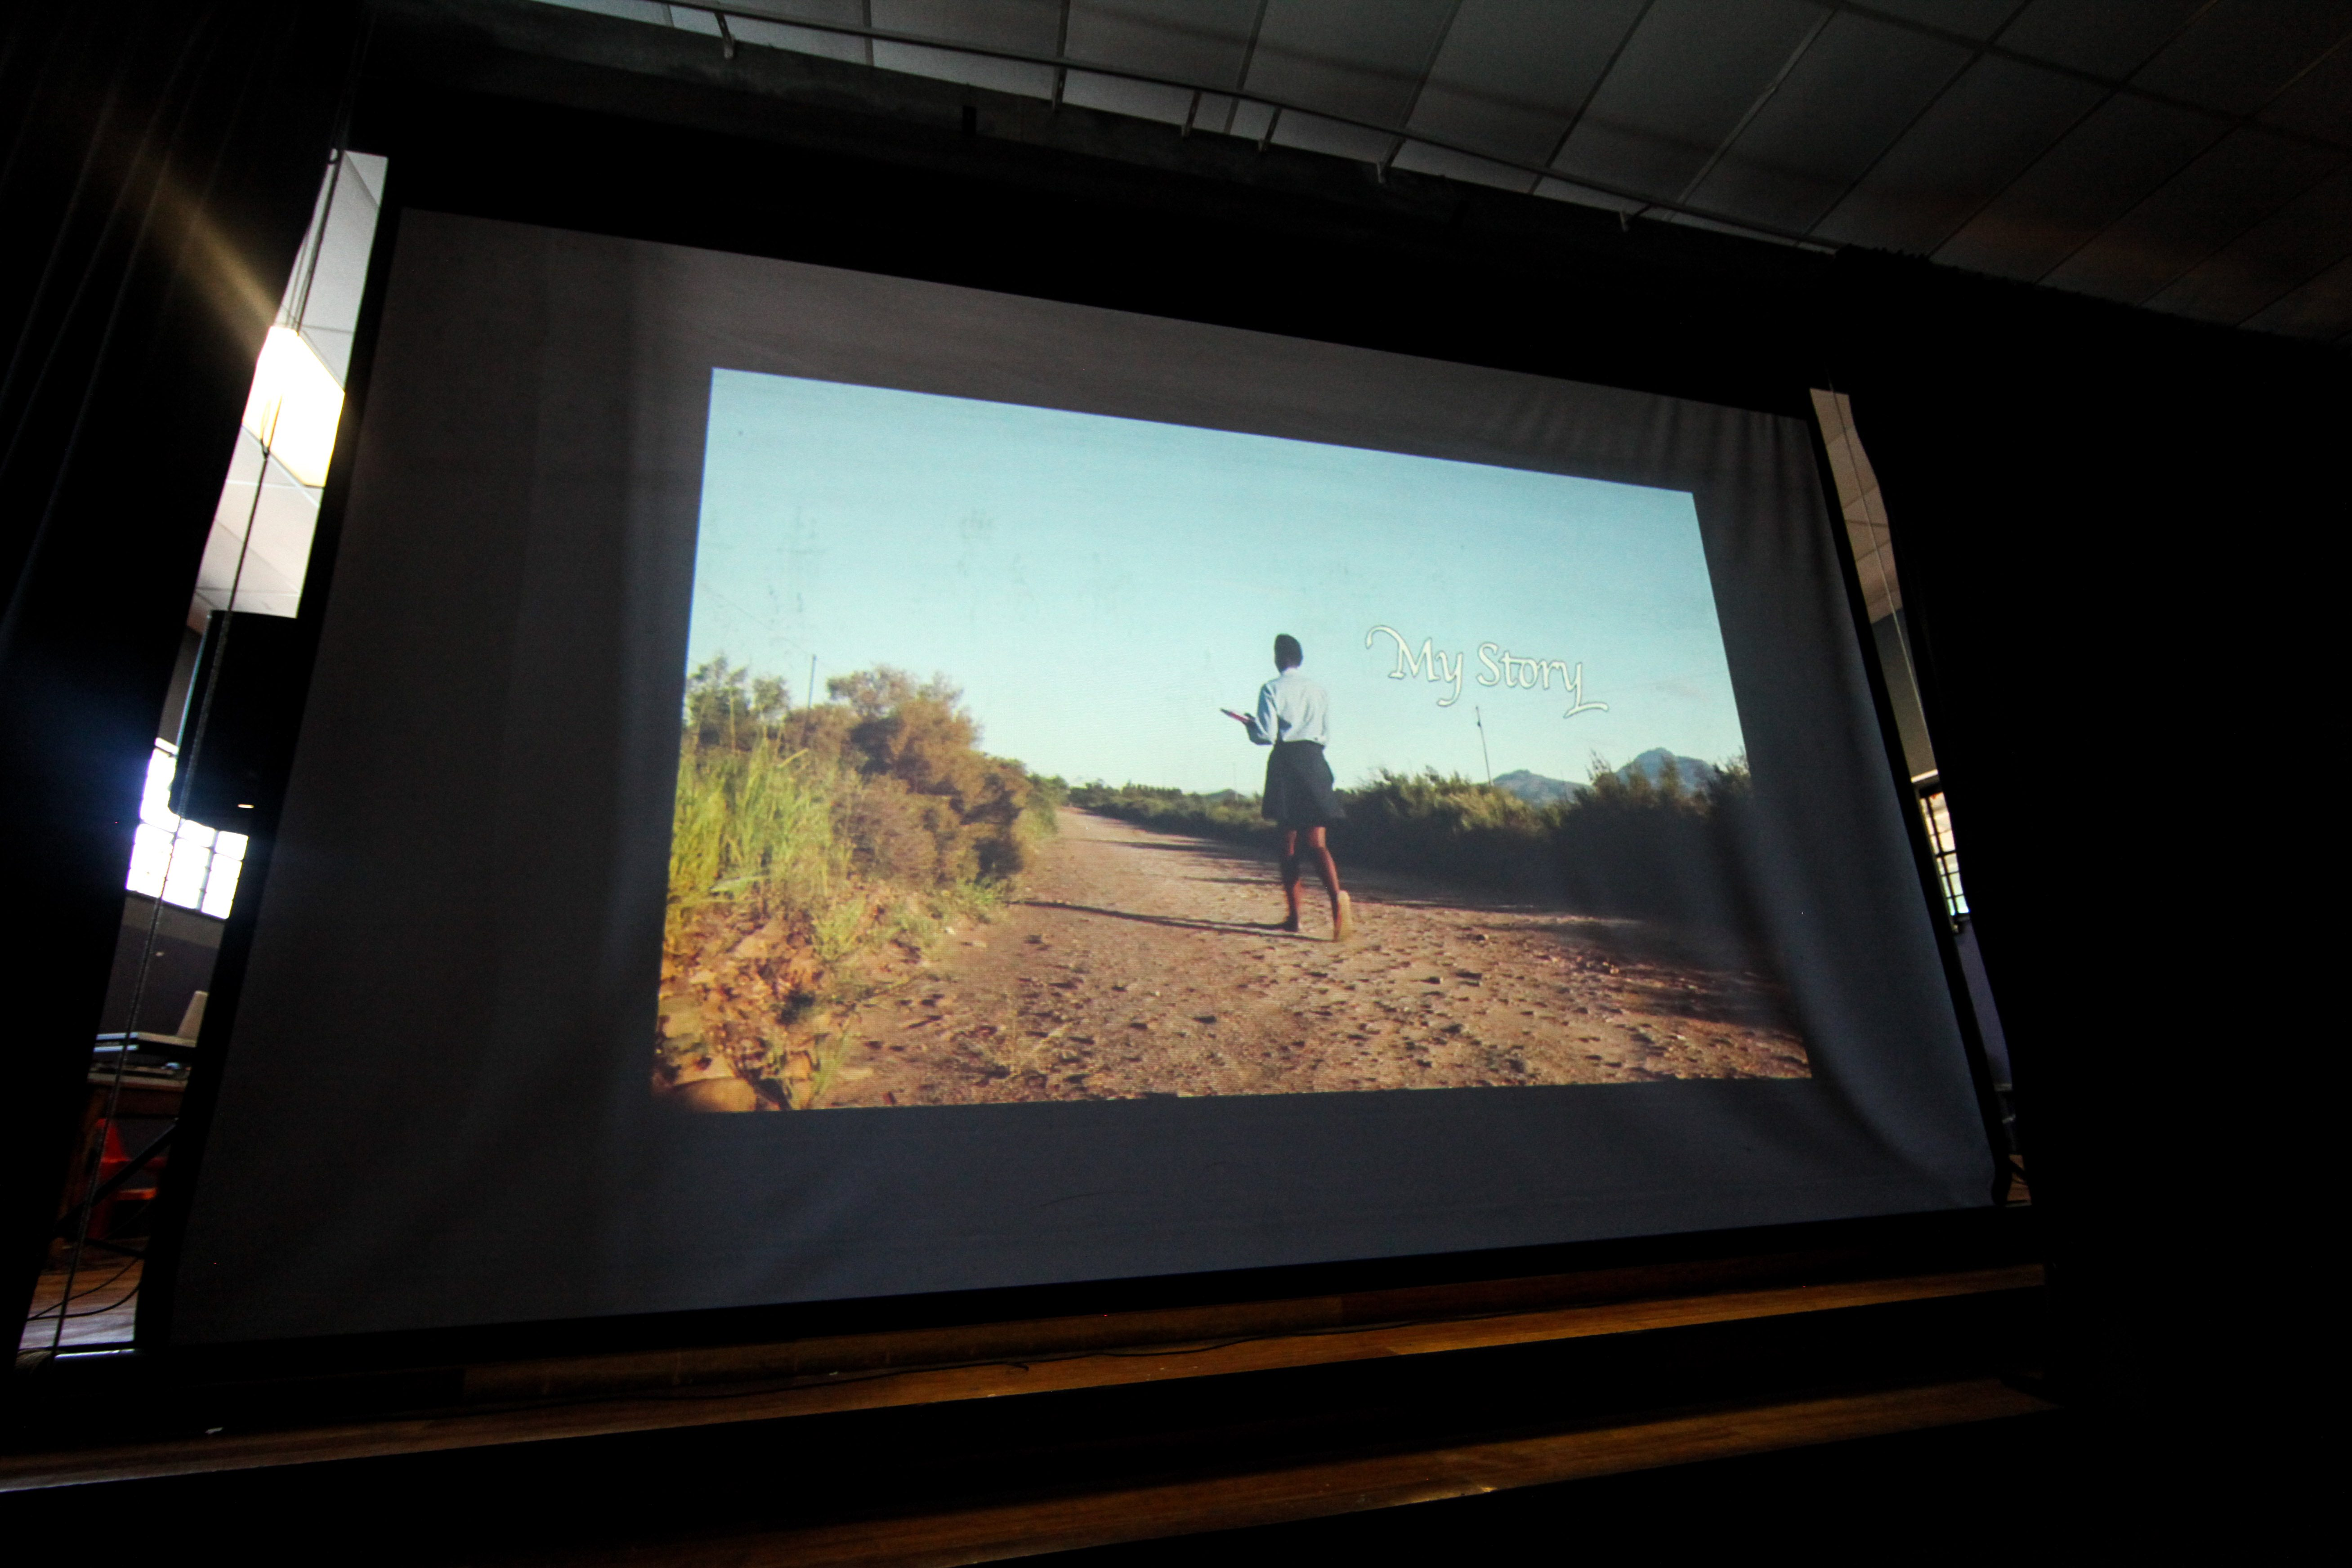 The short film 'My Story' being screening at Dineo's event